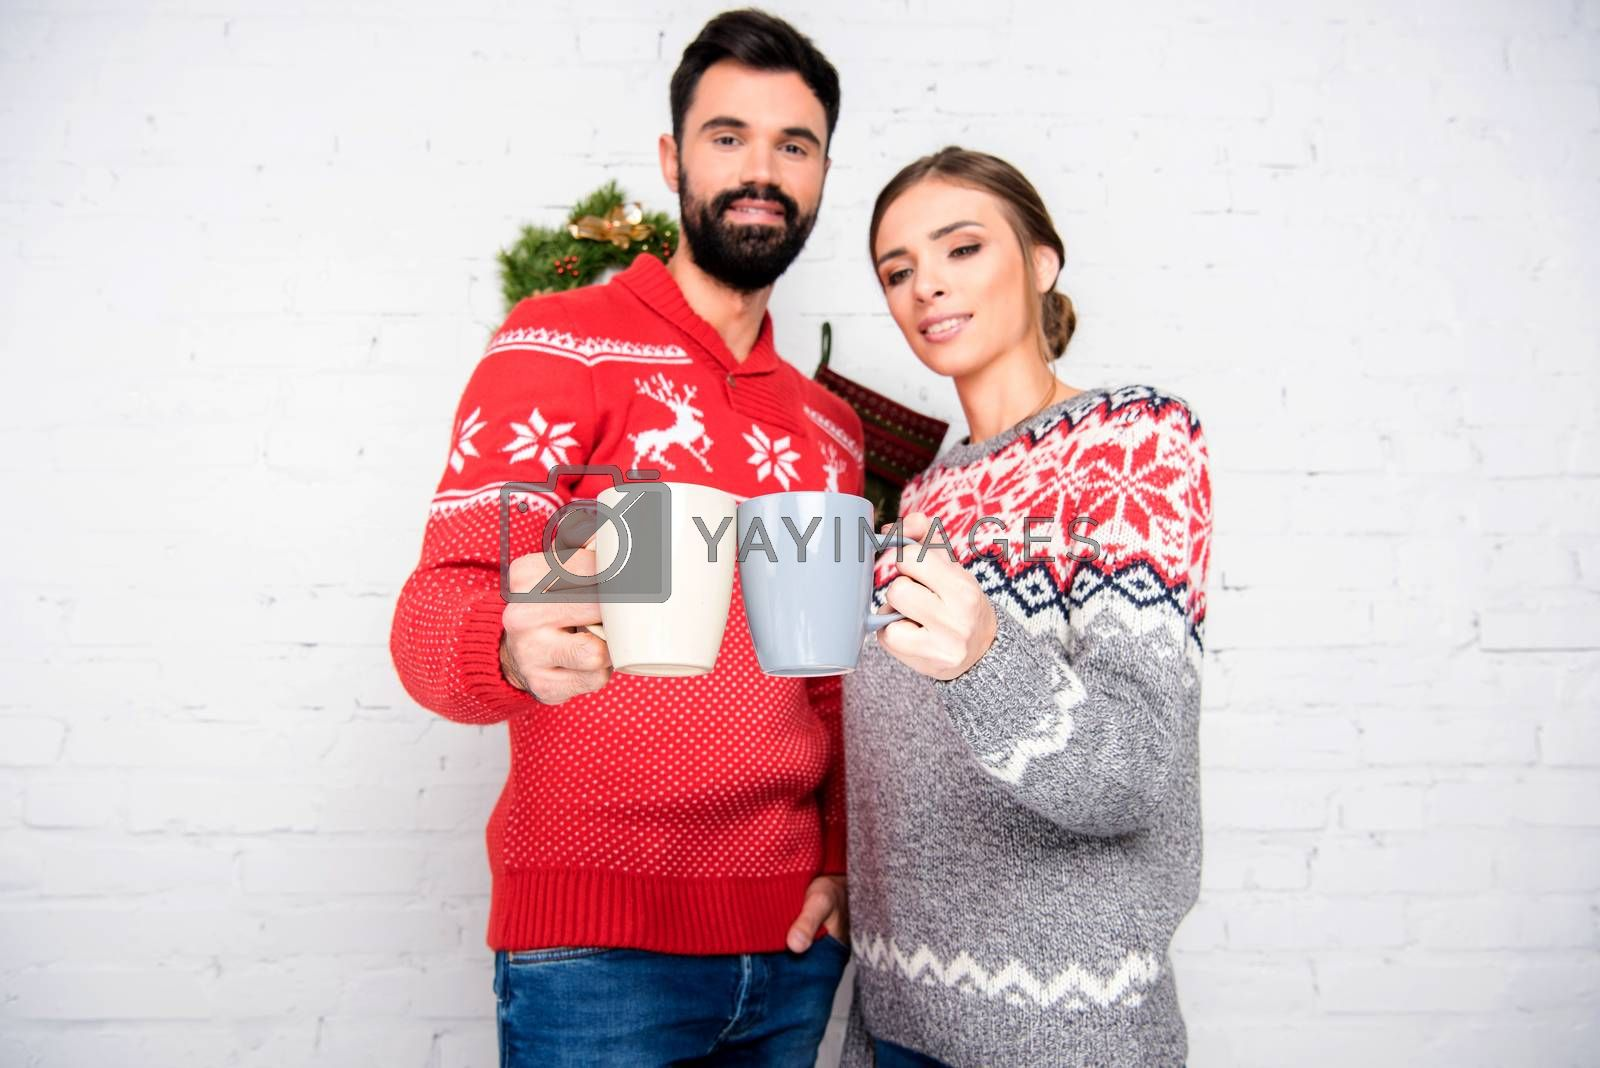 Happy couple wearing christmas sweaters, toasting with cups on light